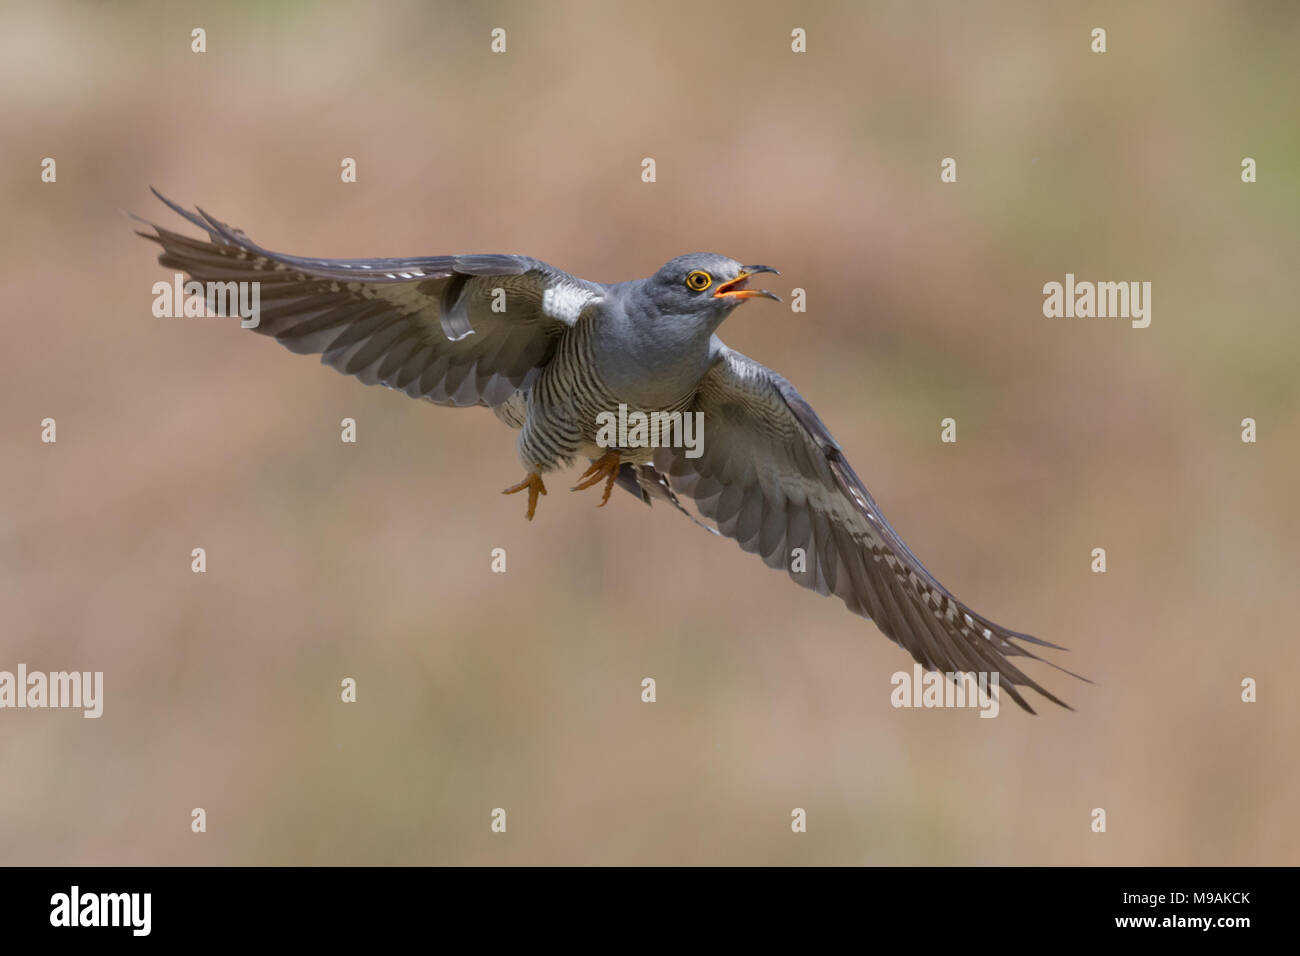 Cuckoo in flight - Stock Image